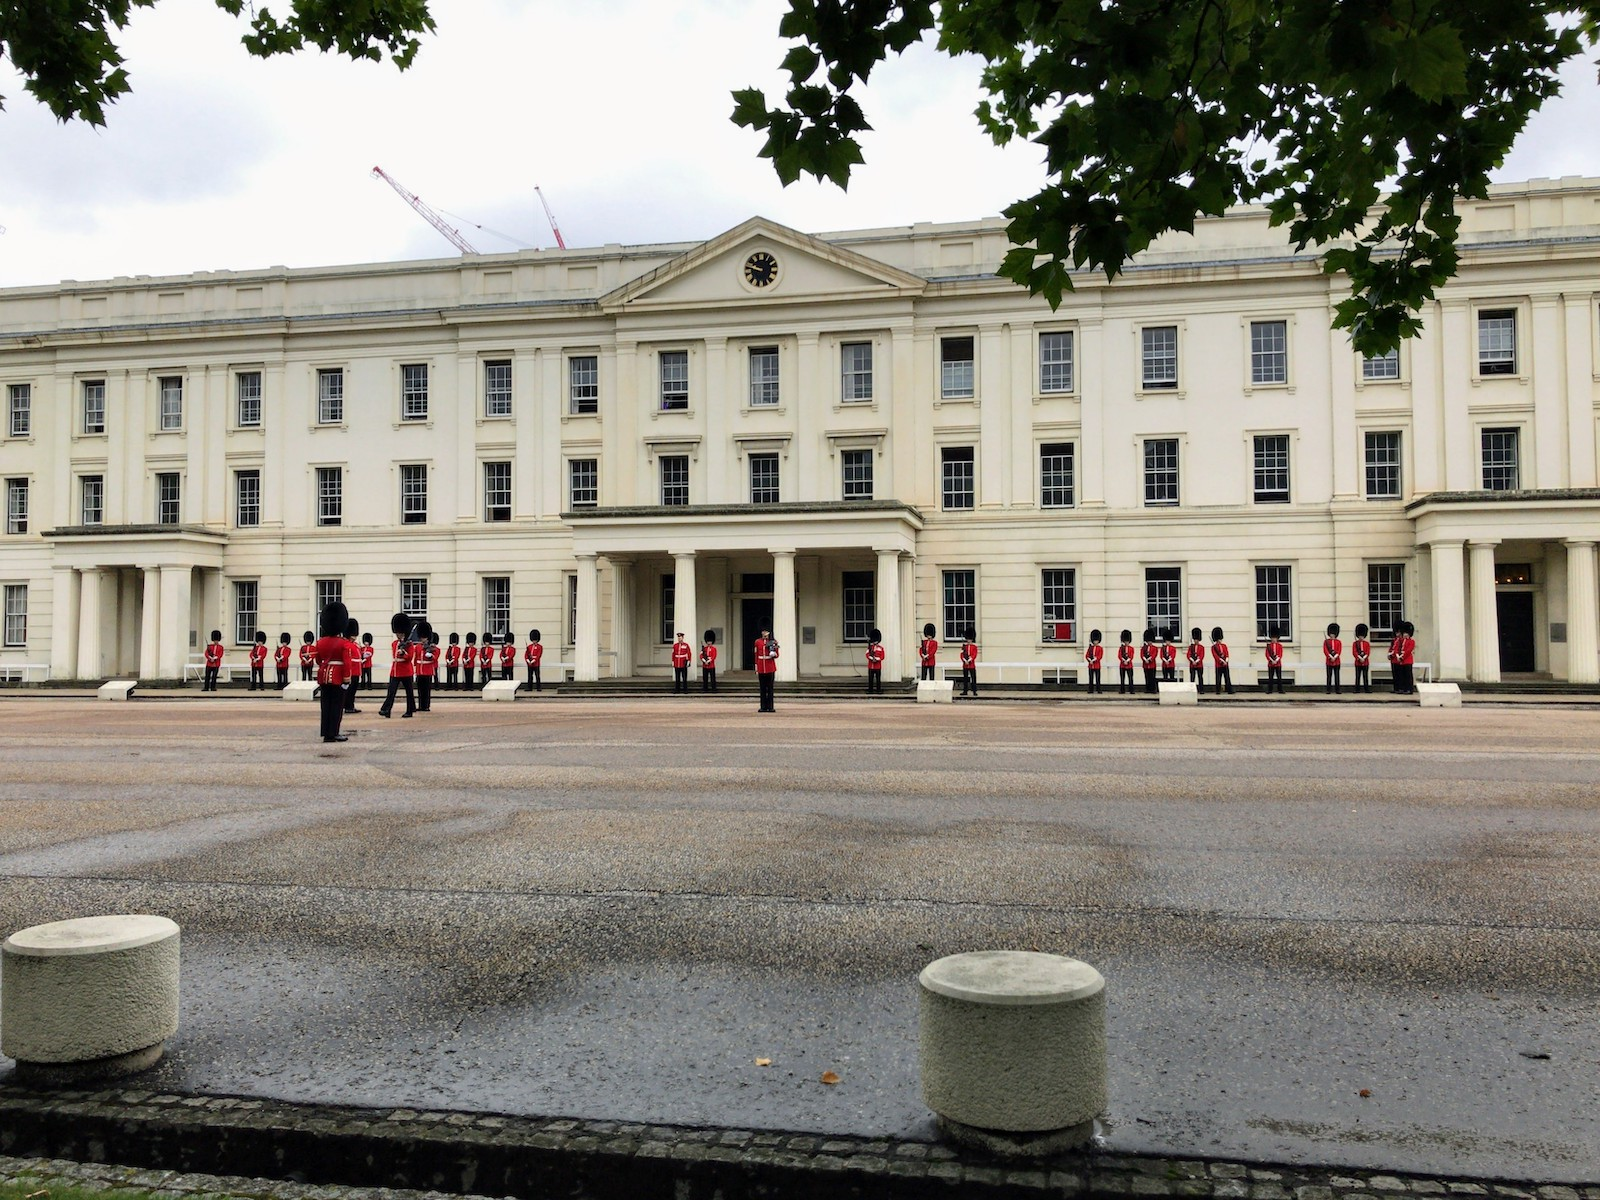 ウェリントン兵舎 Wellington Barracks – london.xyz